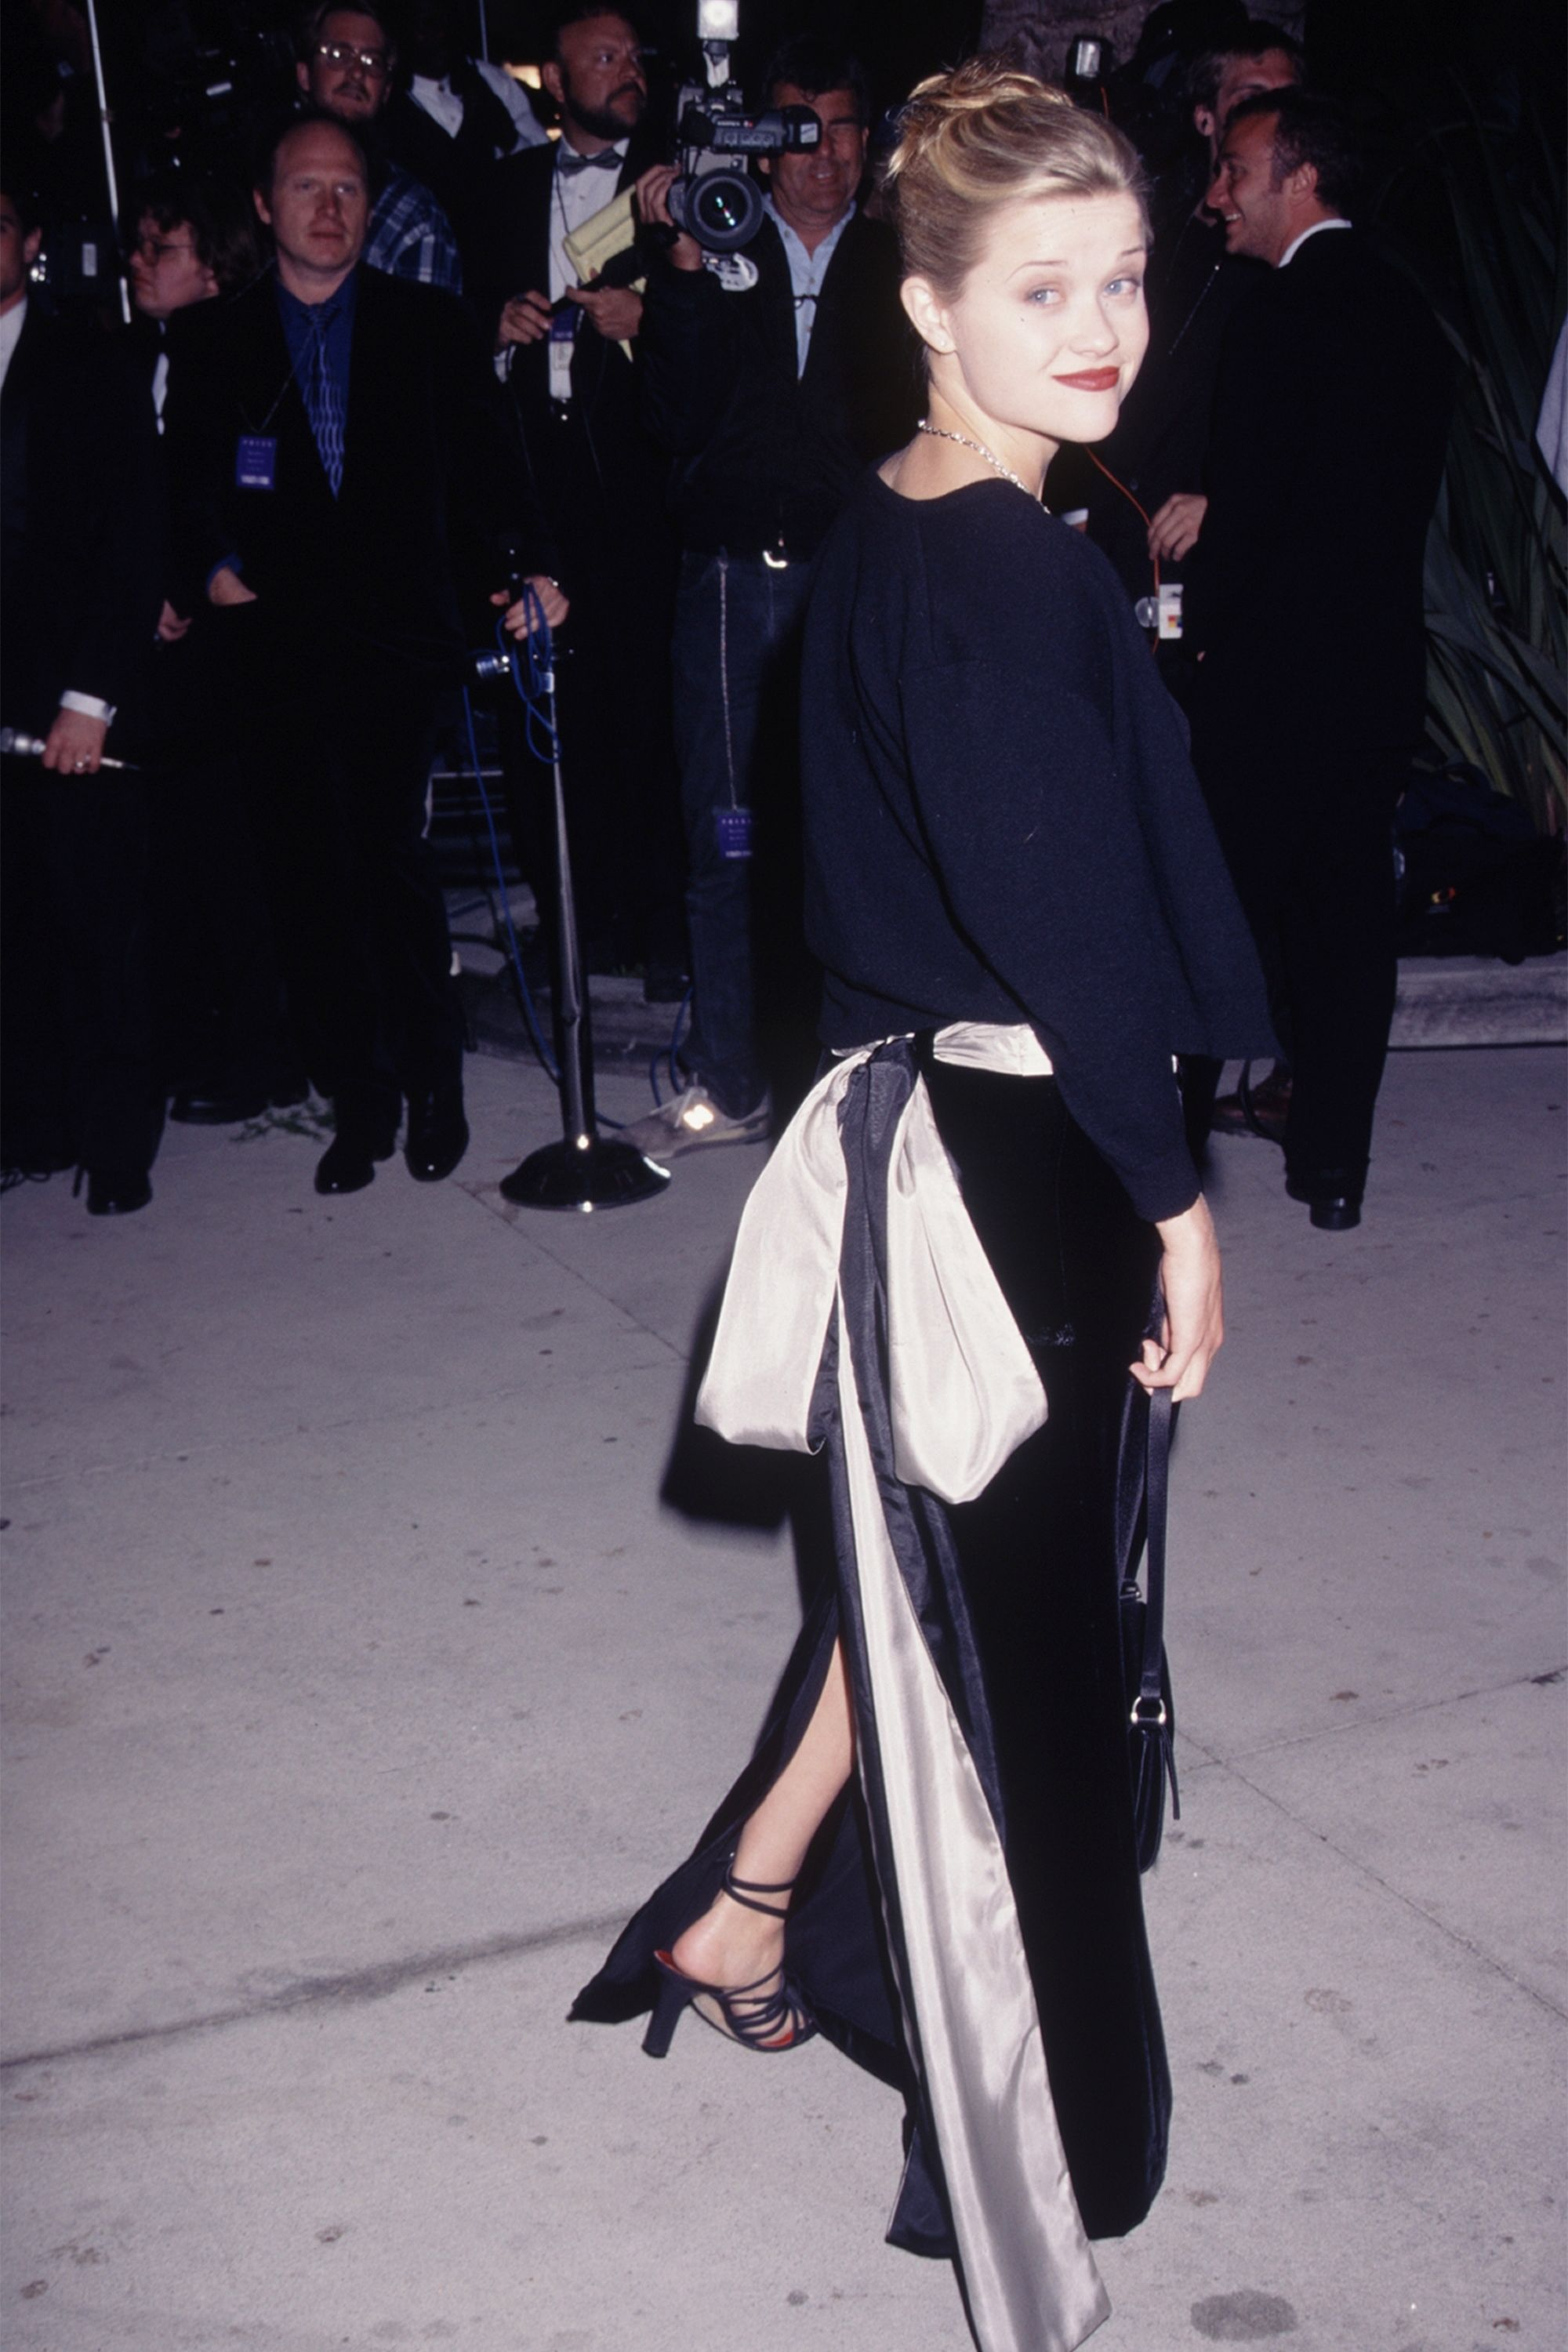 Reese Witherspoon S Best Red Carpet Looks Reese Witherspoon Style